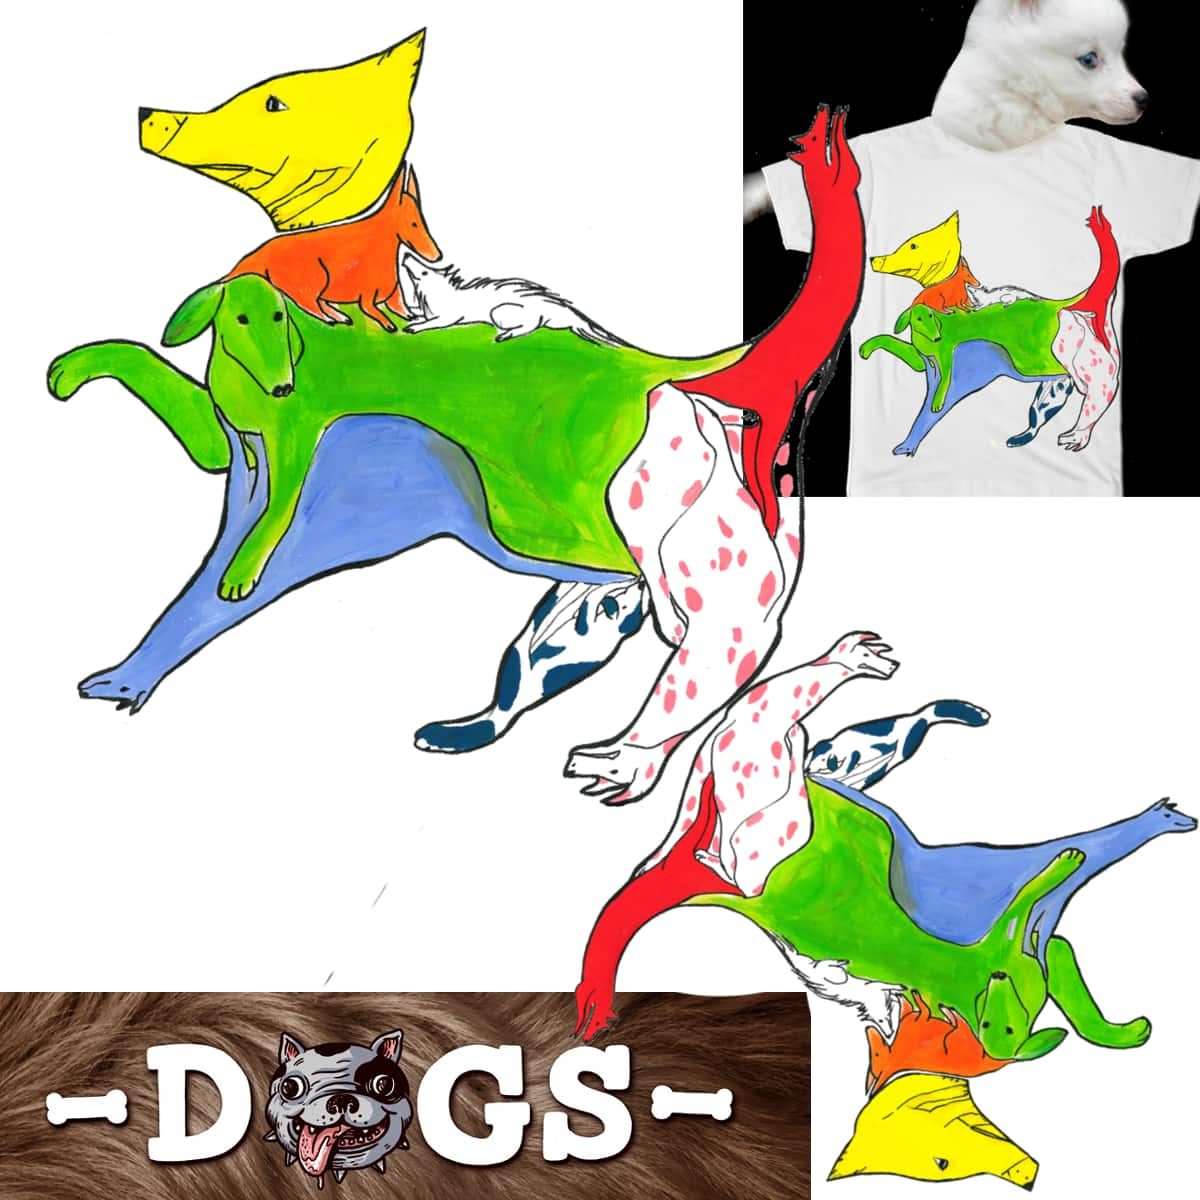 dogs are made of dogs by ranDomdaconte on Threadless